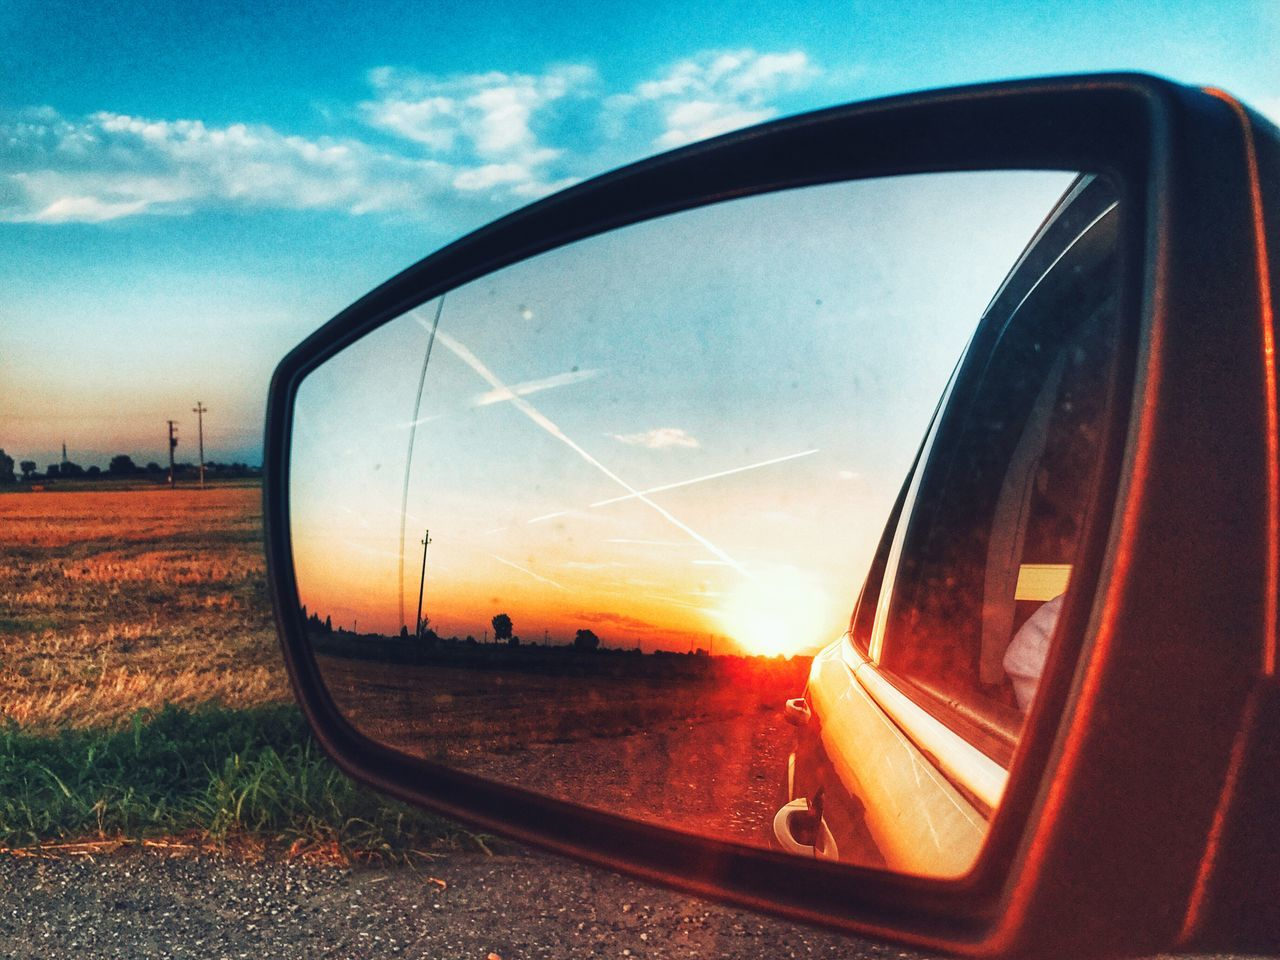 side-view mirror, transportation, window, sky, reflection, no people, landscape, nature, sunset, outdoors, close-up, day